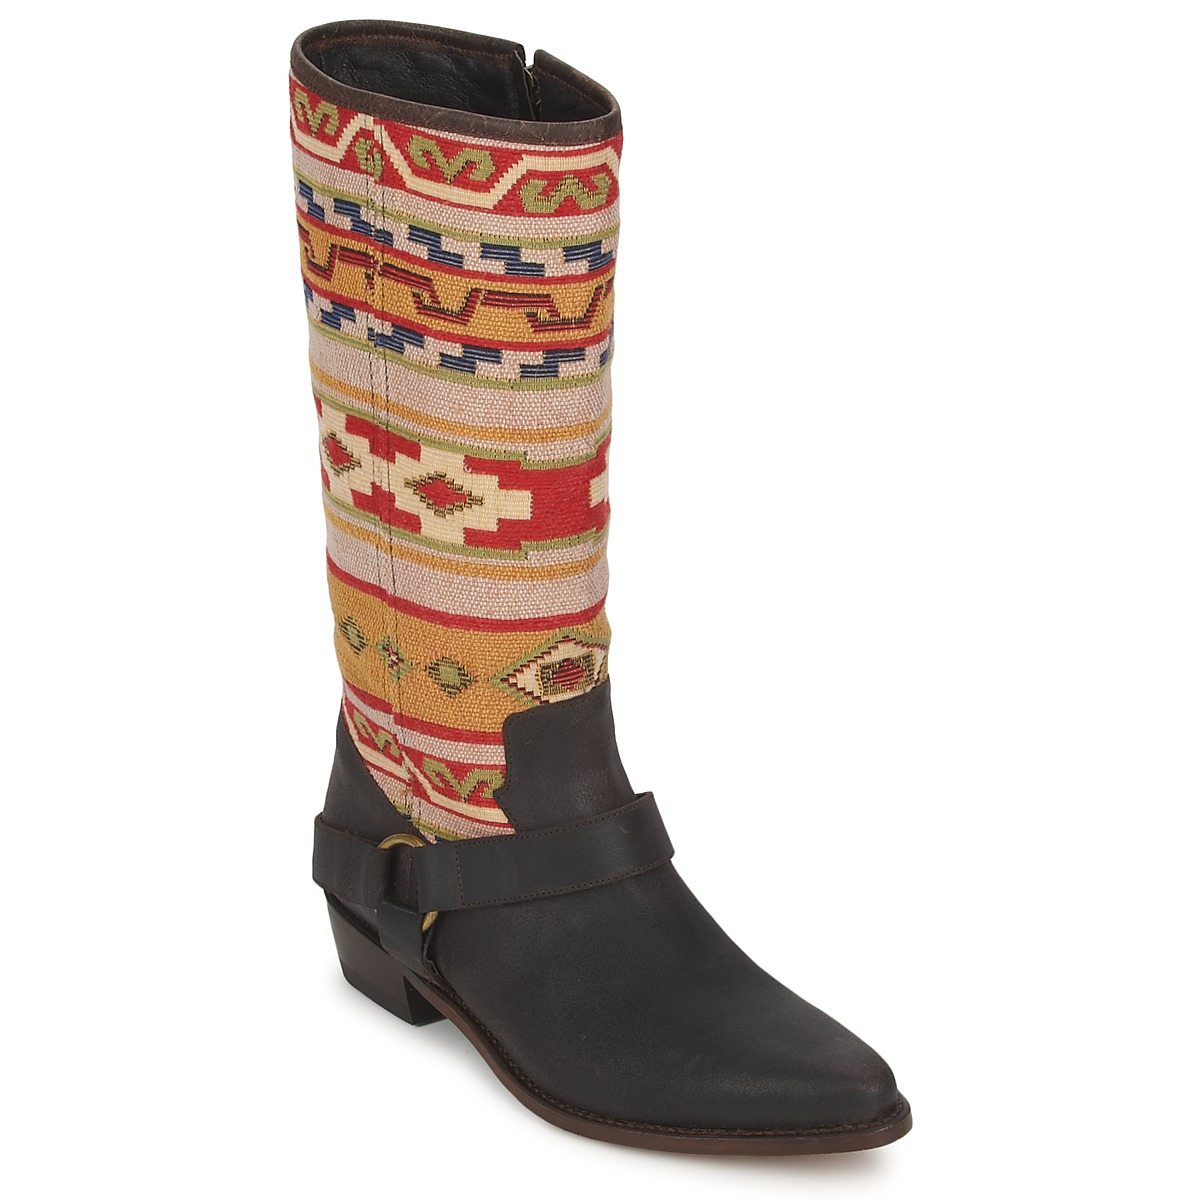 Botte ville Sancho Boots CROSTA TIBUR GAVA Marron-rouge